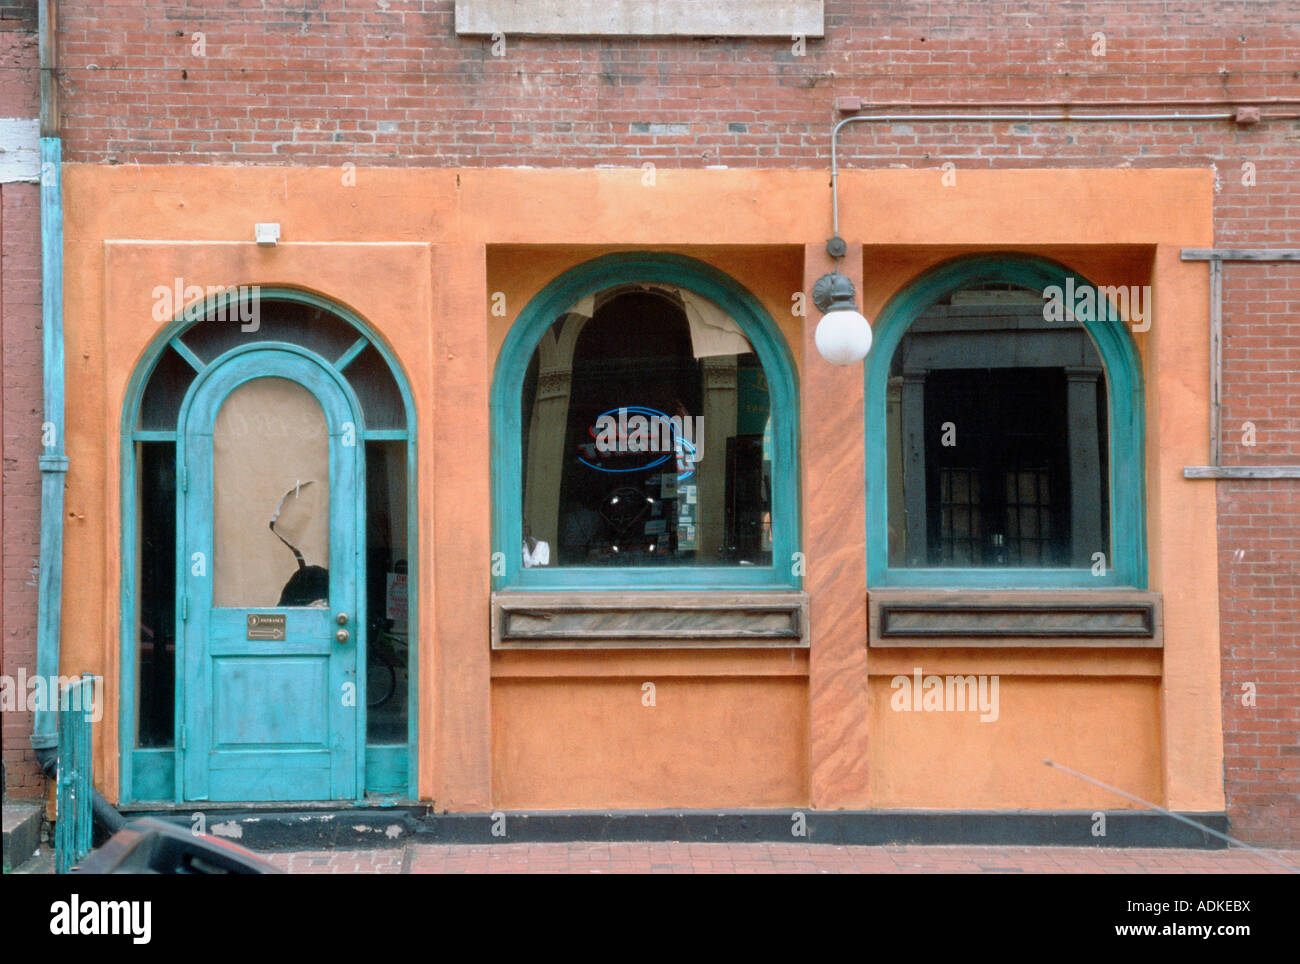 Arched Broken Doors And Window On Brick Building And Sidewalk In The City  Blue Frames And